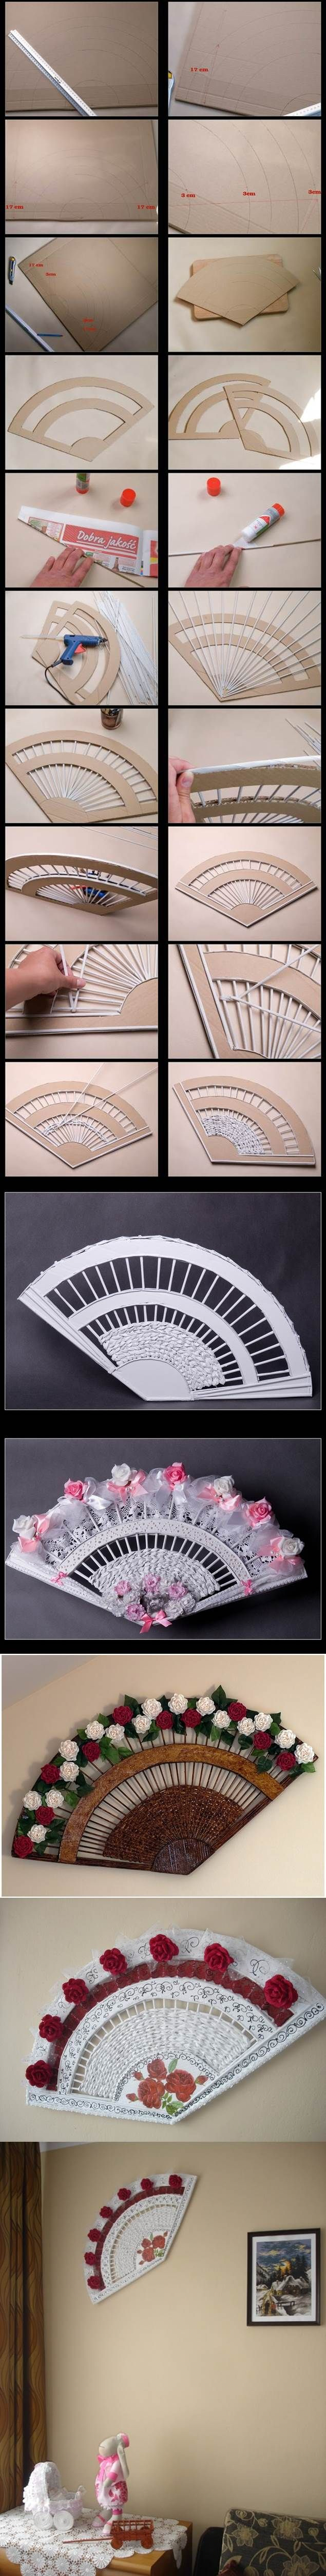 DIY Decorative Fan from Old Newspaper and Cardboard 2